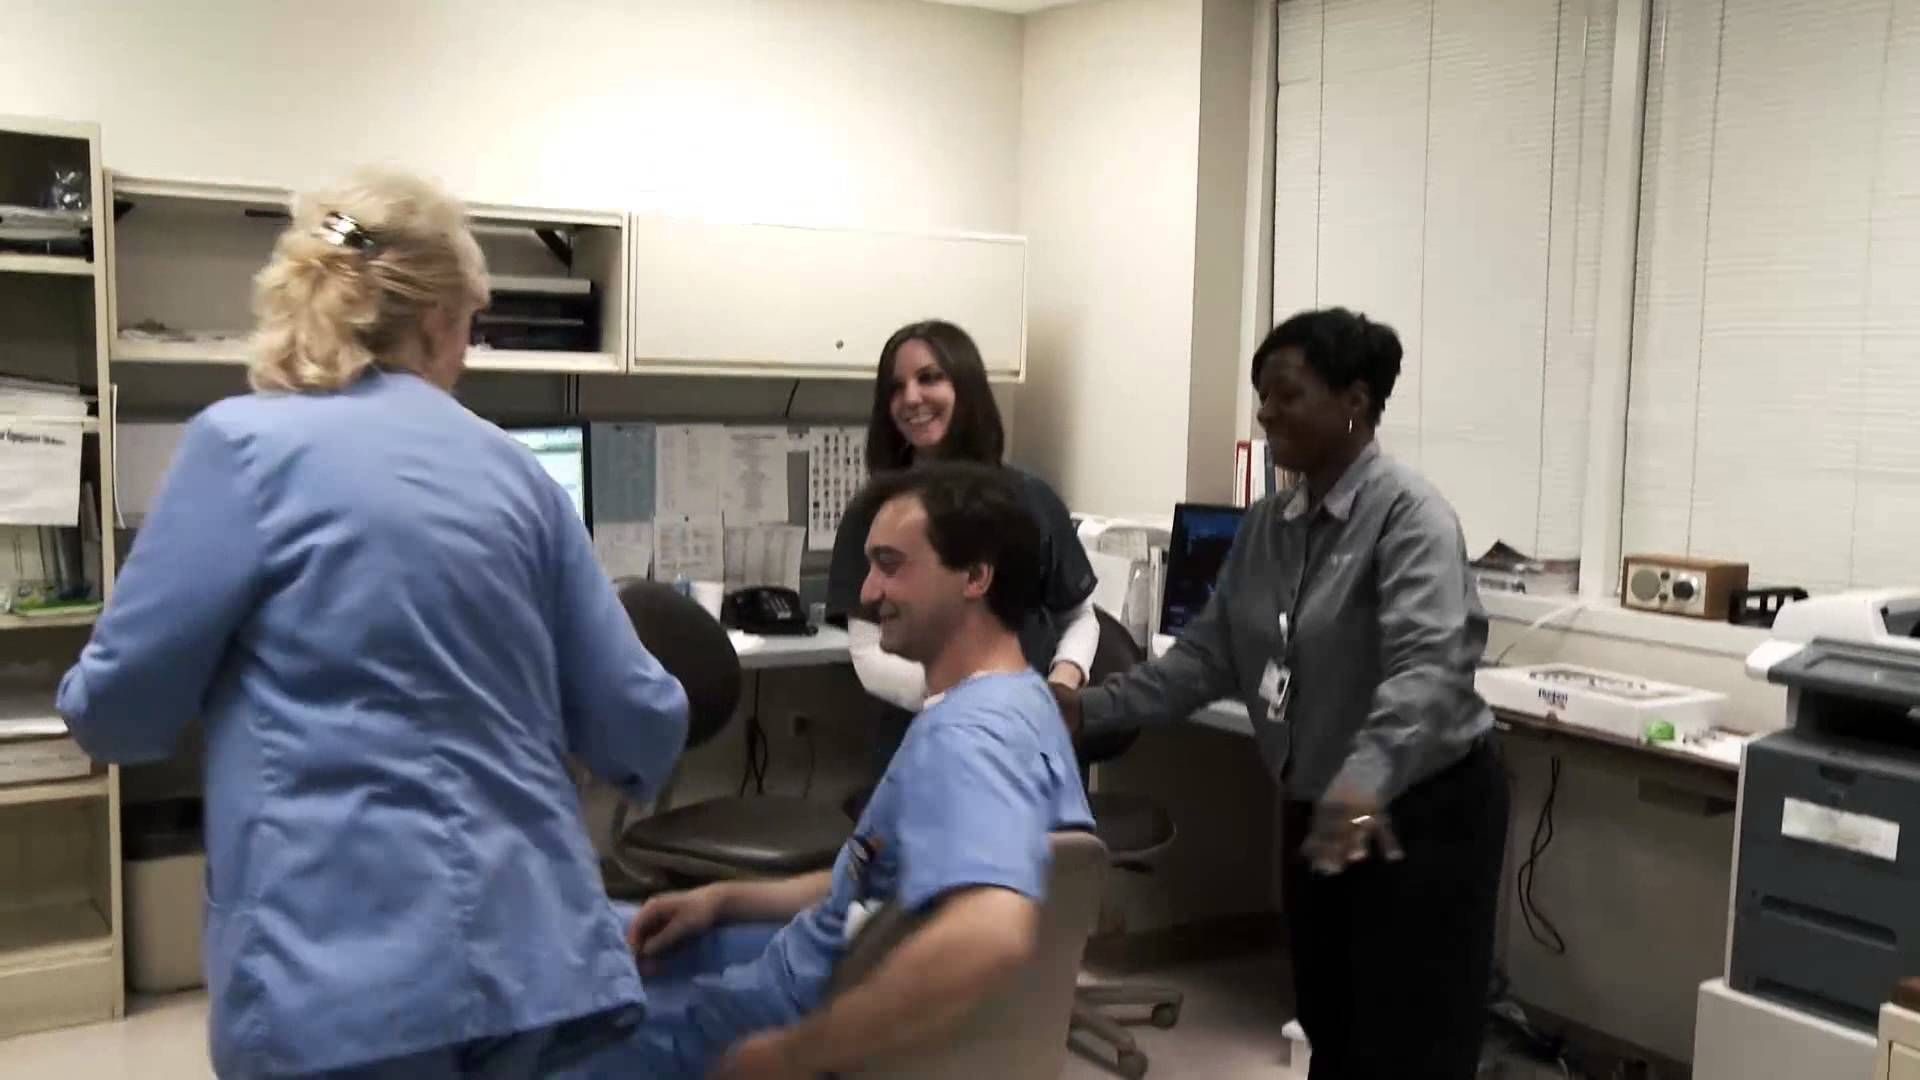 Check out our Top 15 employee video! This is just one way